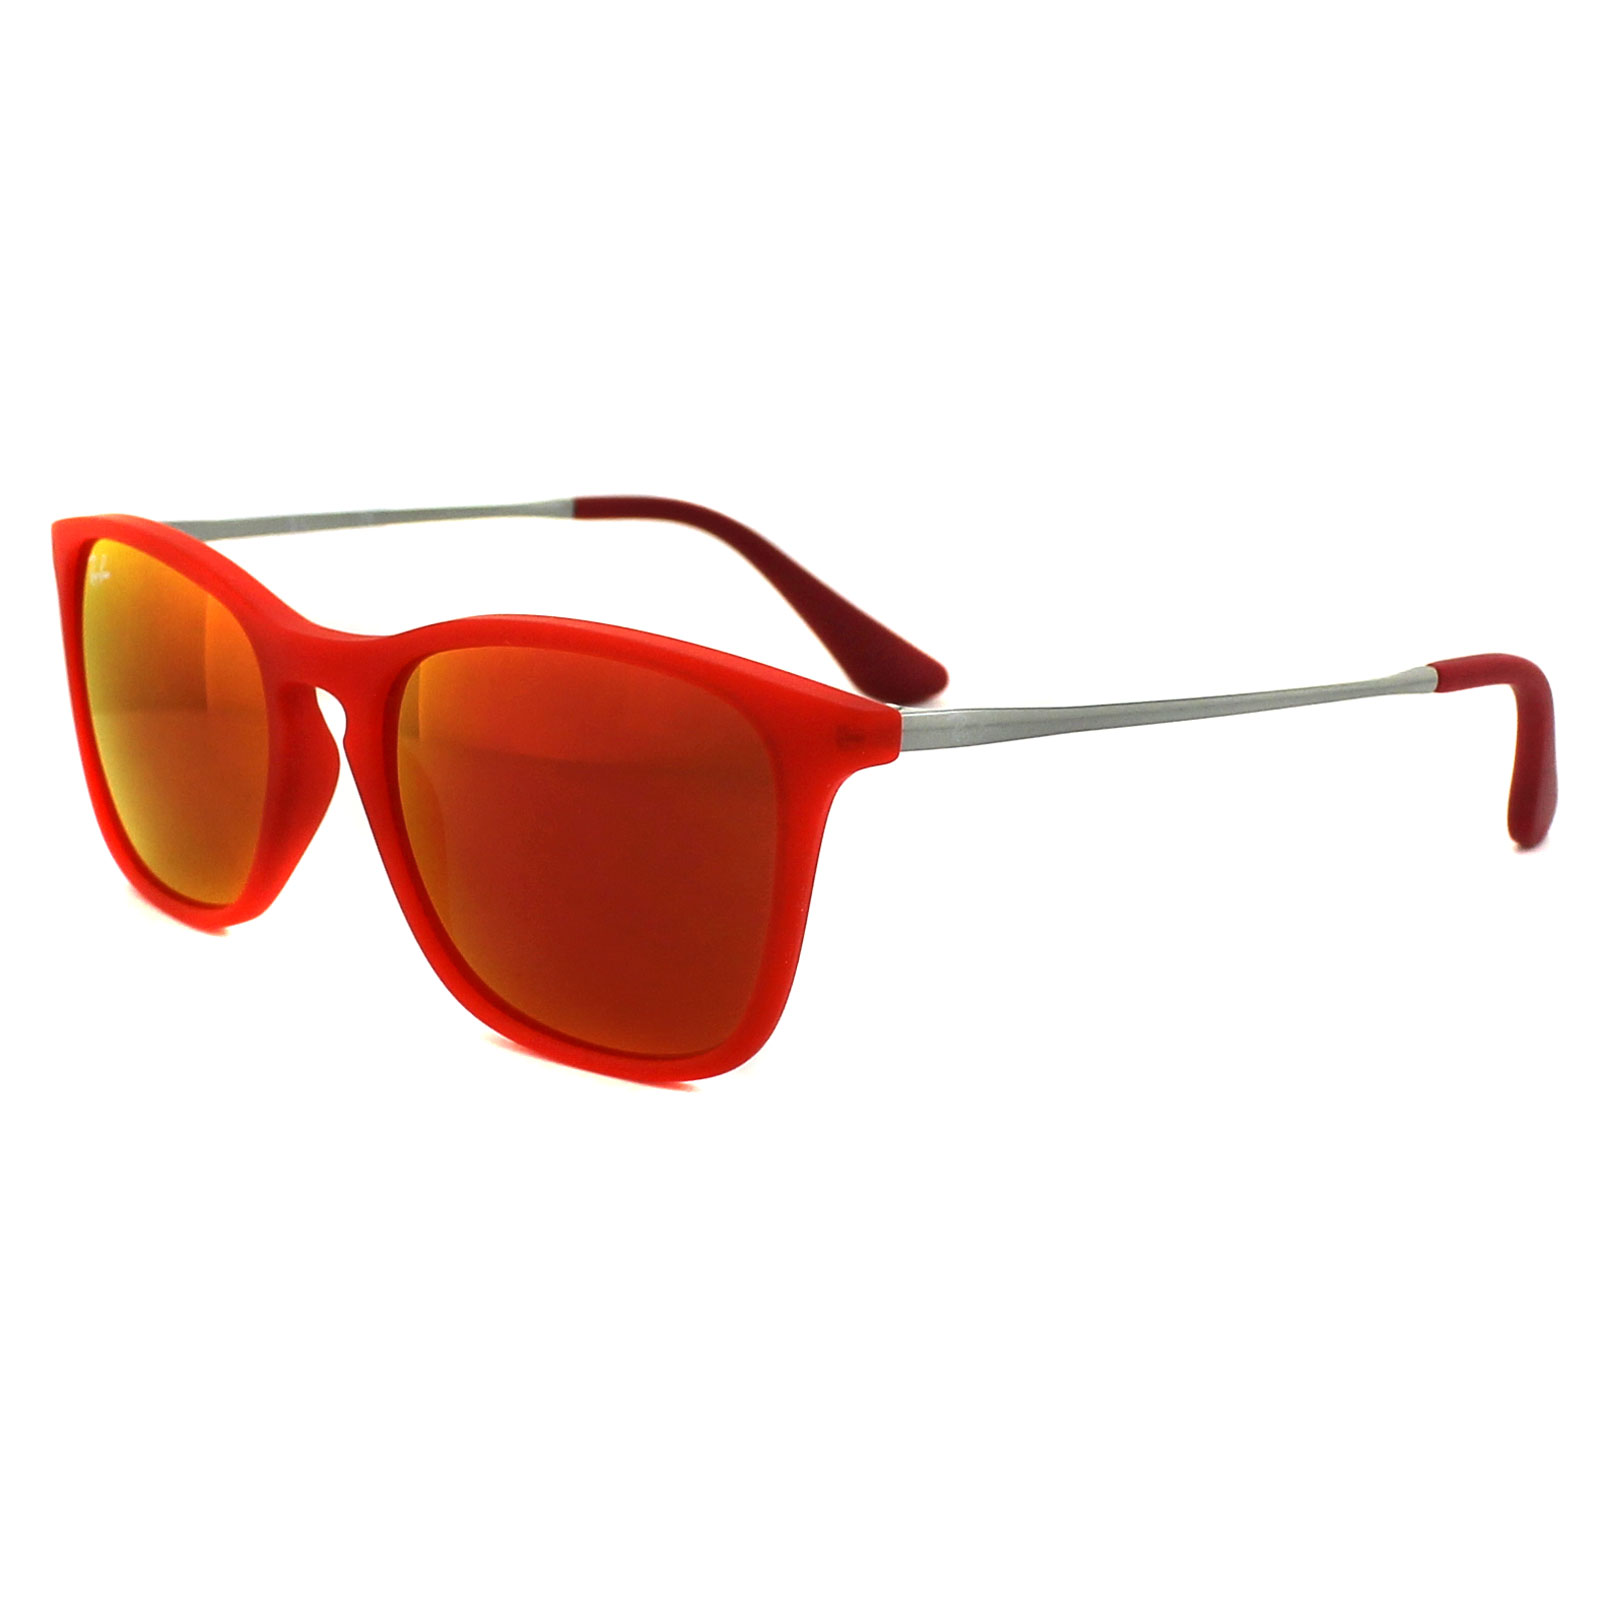 29383d2146 Sentinel Ray-Ban Junior Sunglasses Chris Junior 9061 70106Q Rubber Red Red  Mirror